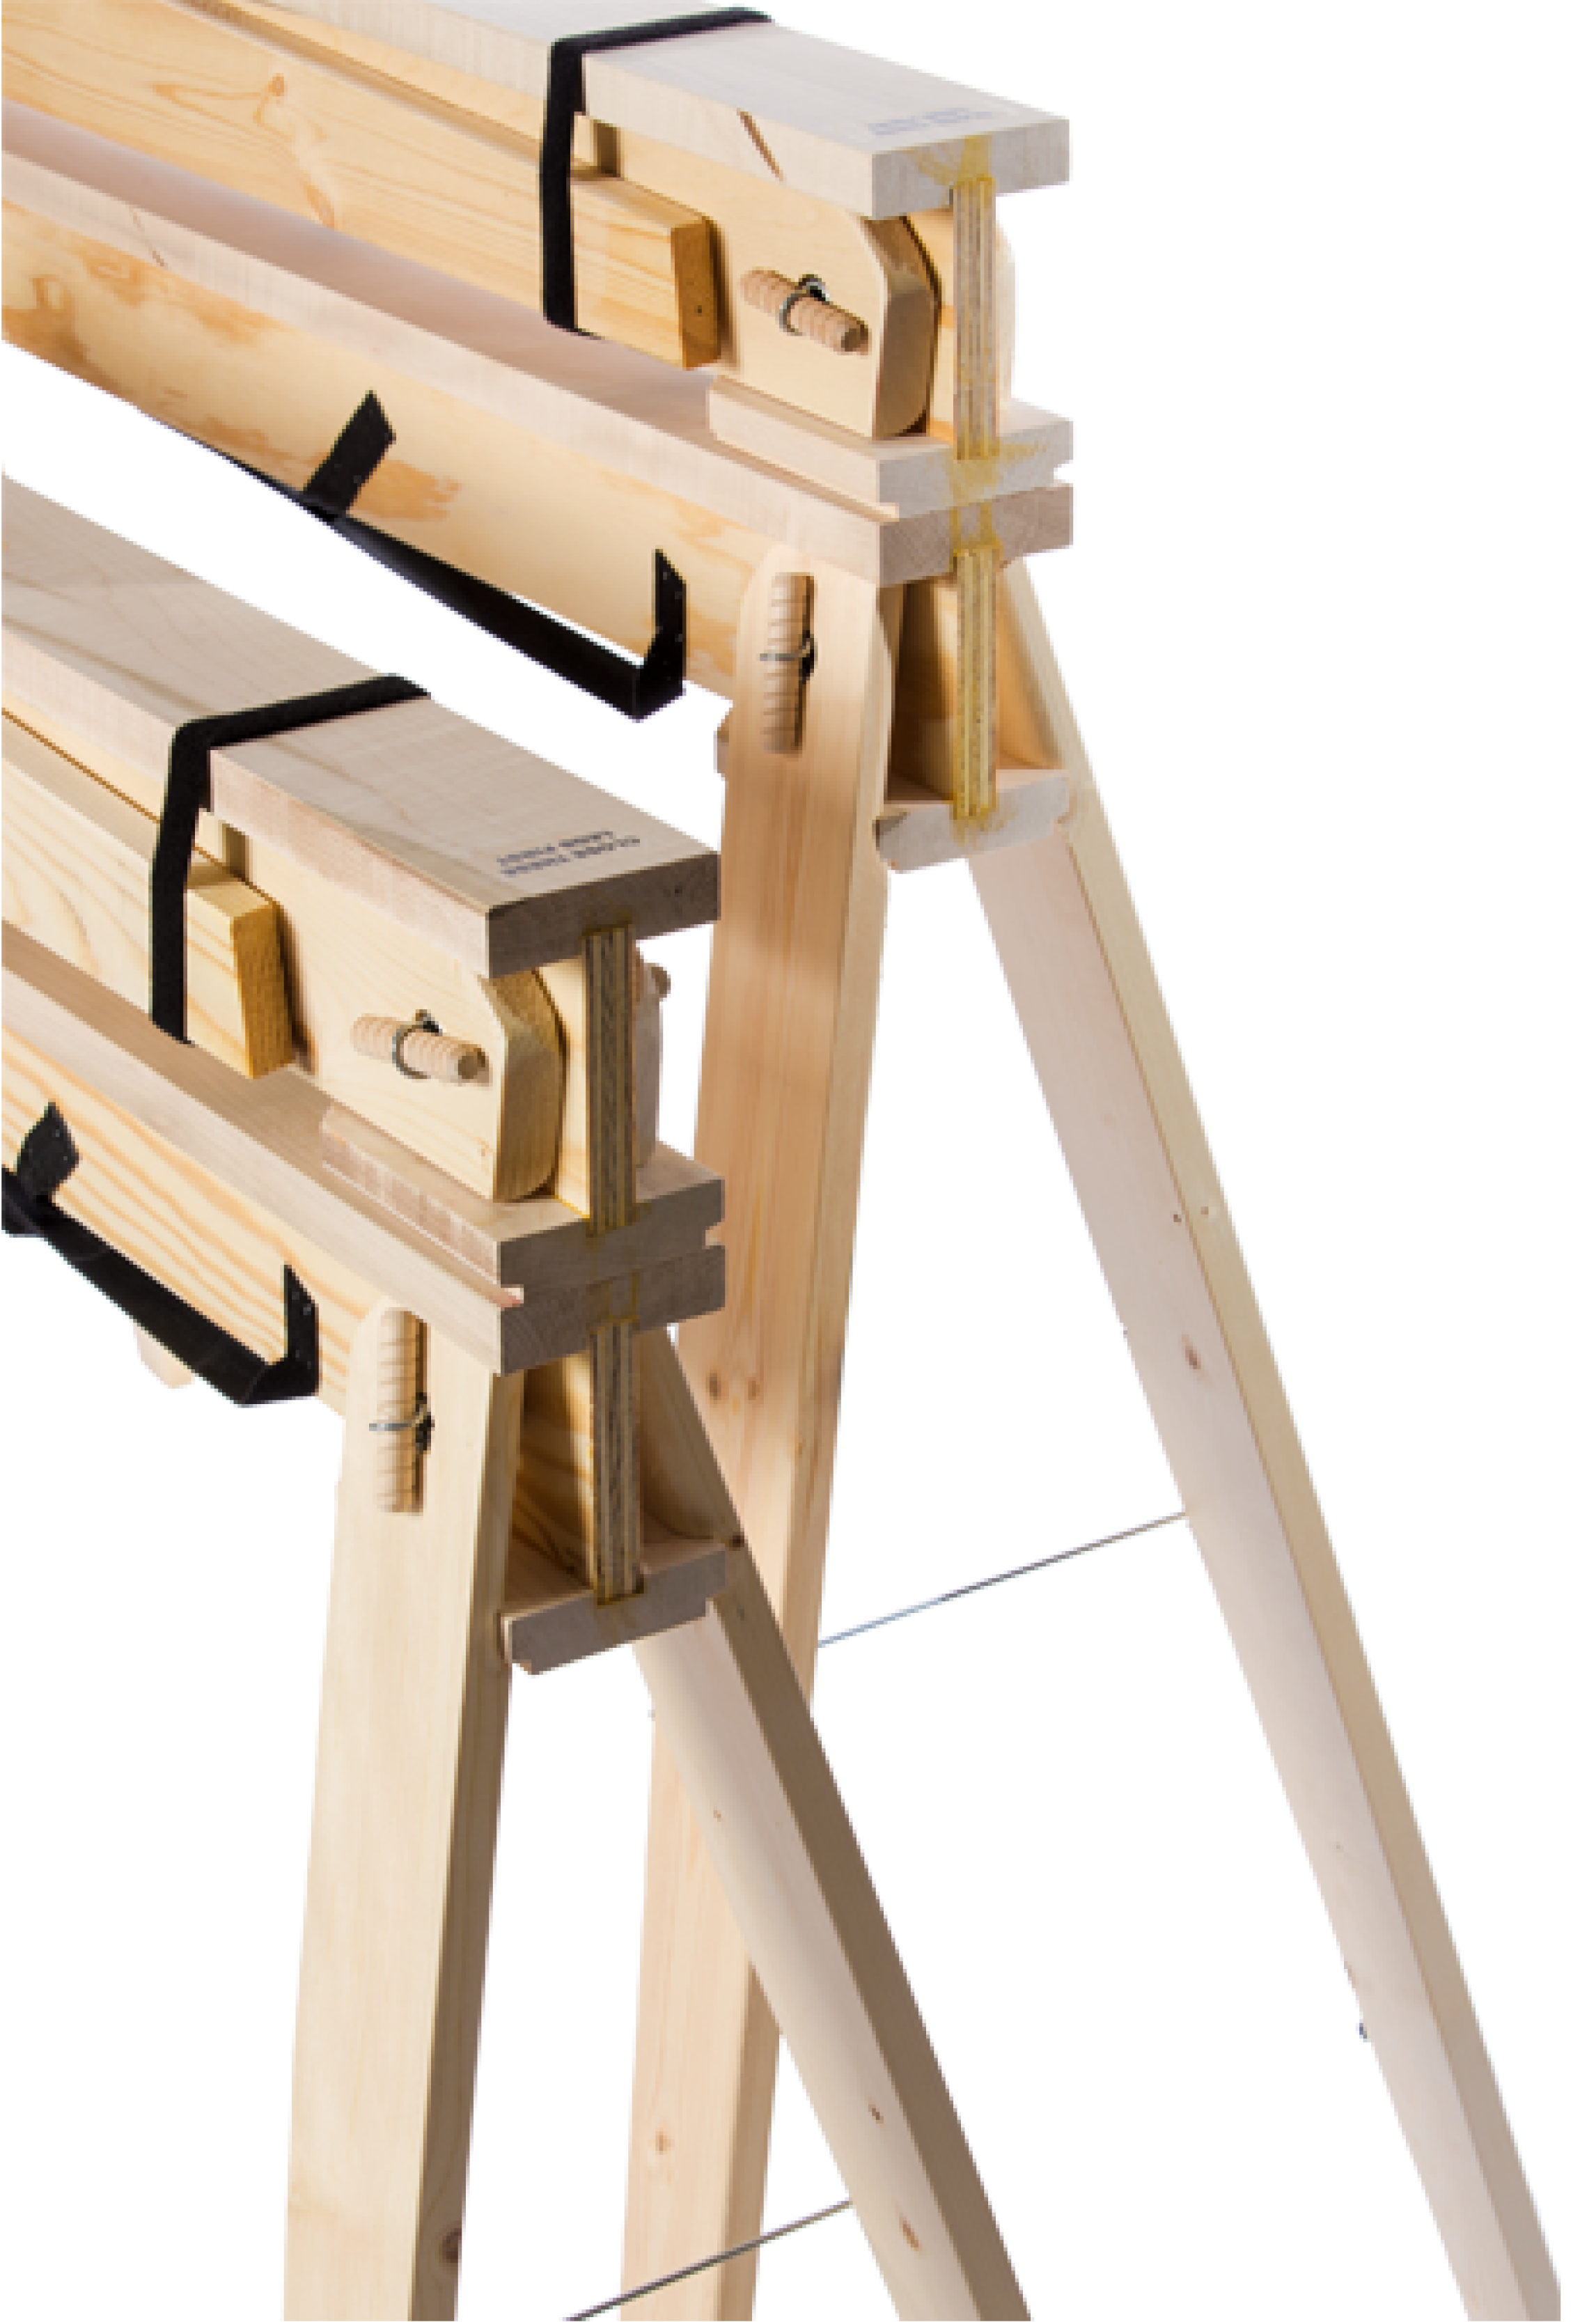 Hide-A-Horse Folding Sawhorses Deployed and Folded Stacked on Top